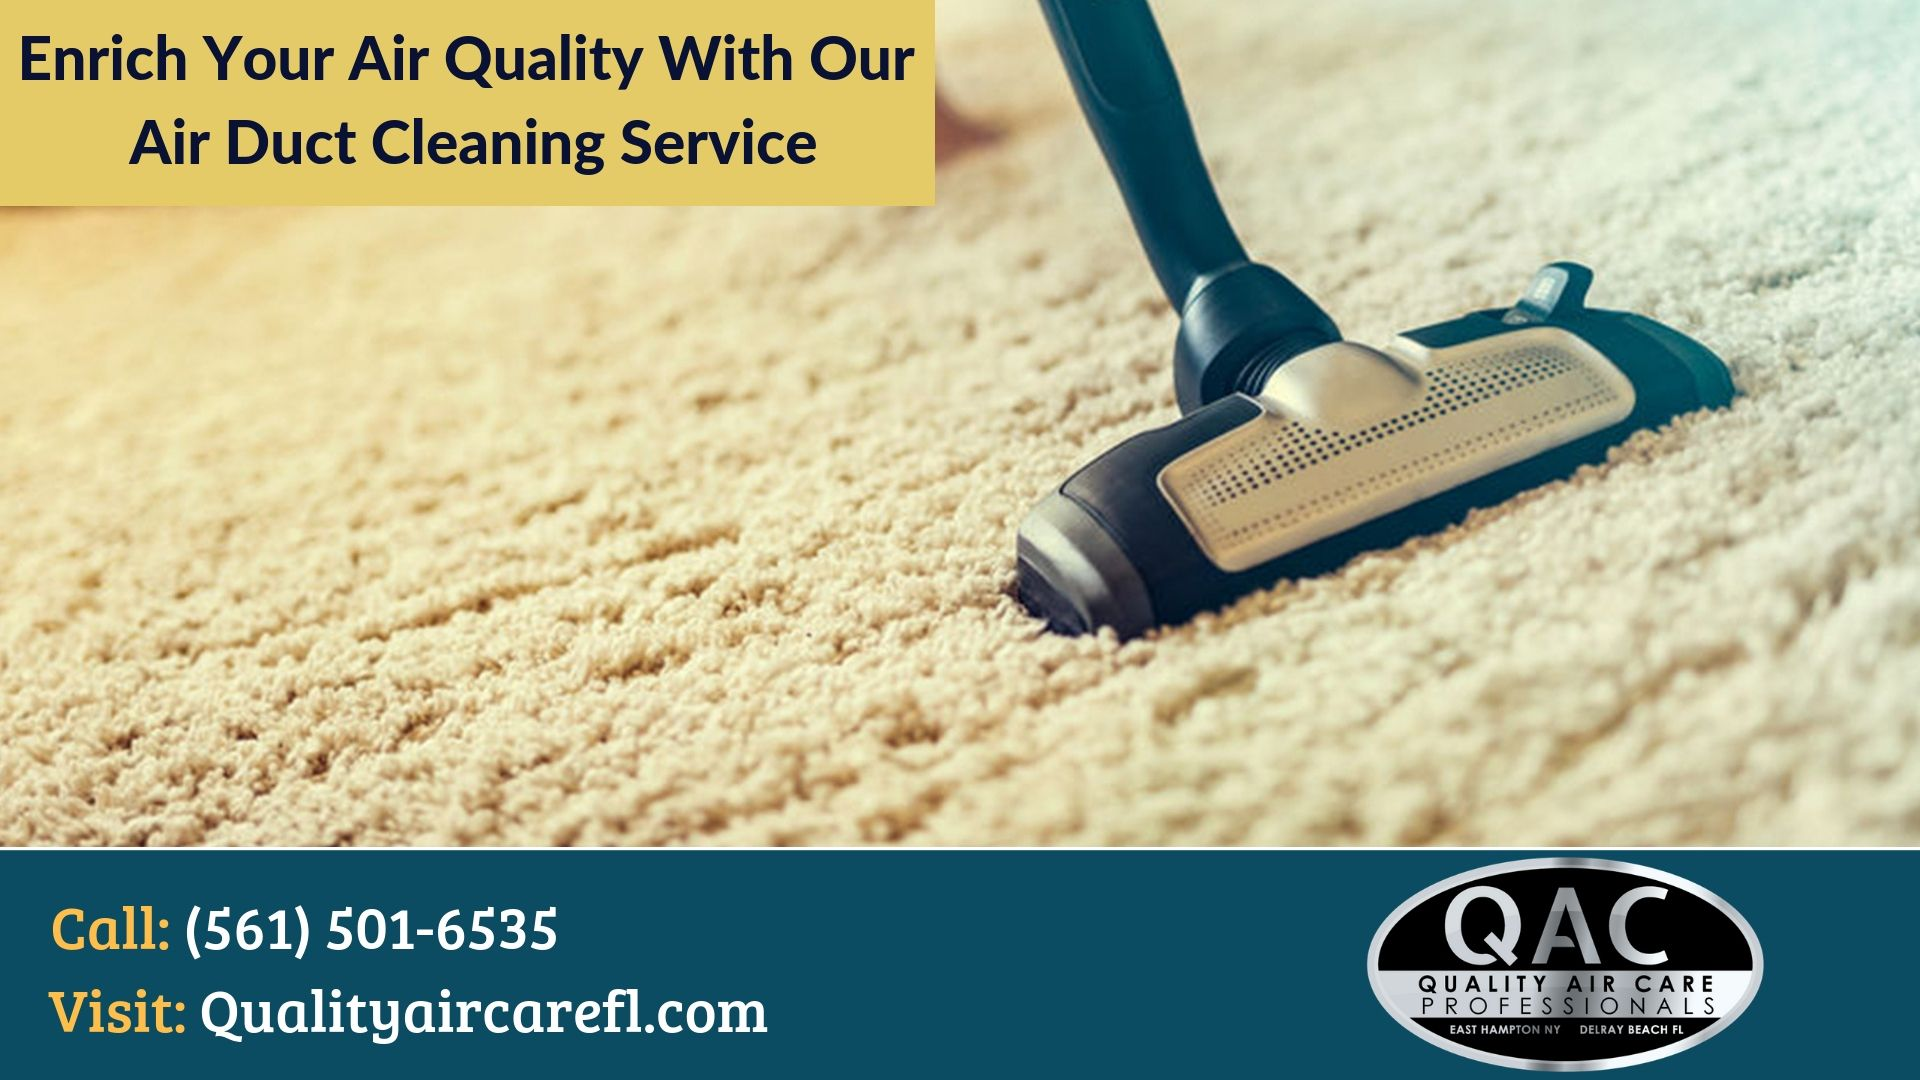 Our South Florida Air Duct Cleaning Services Air care